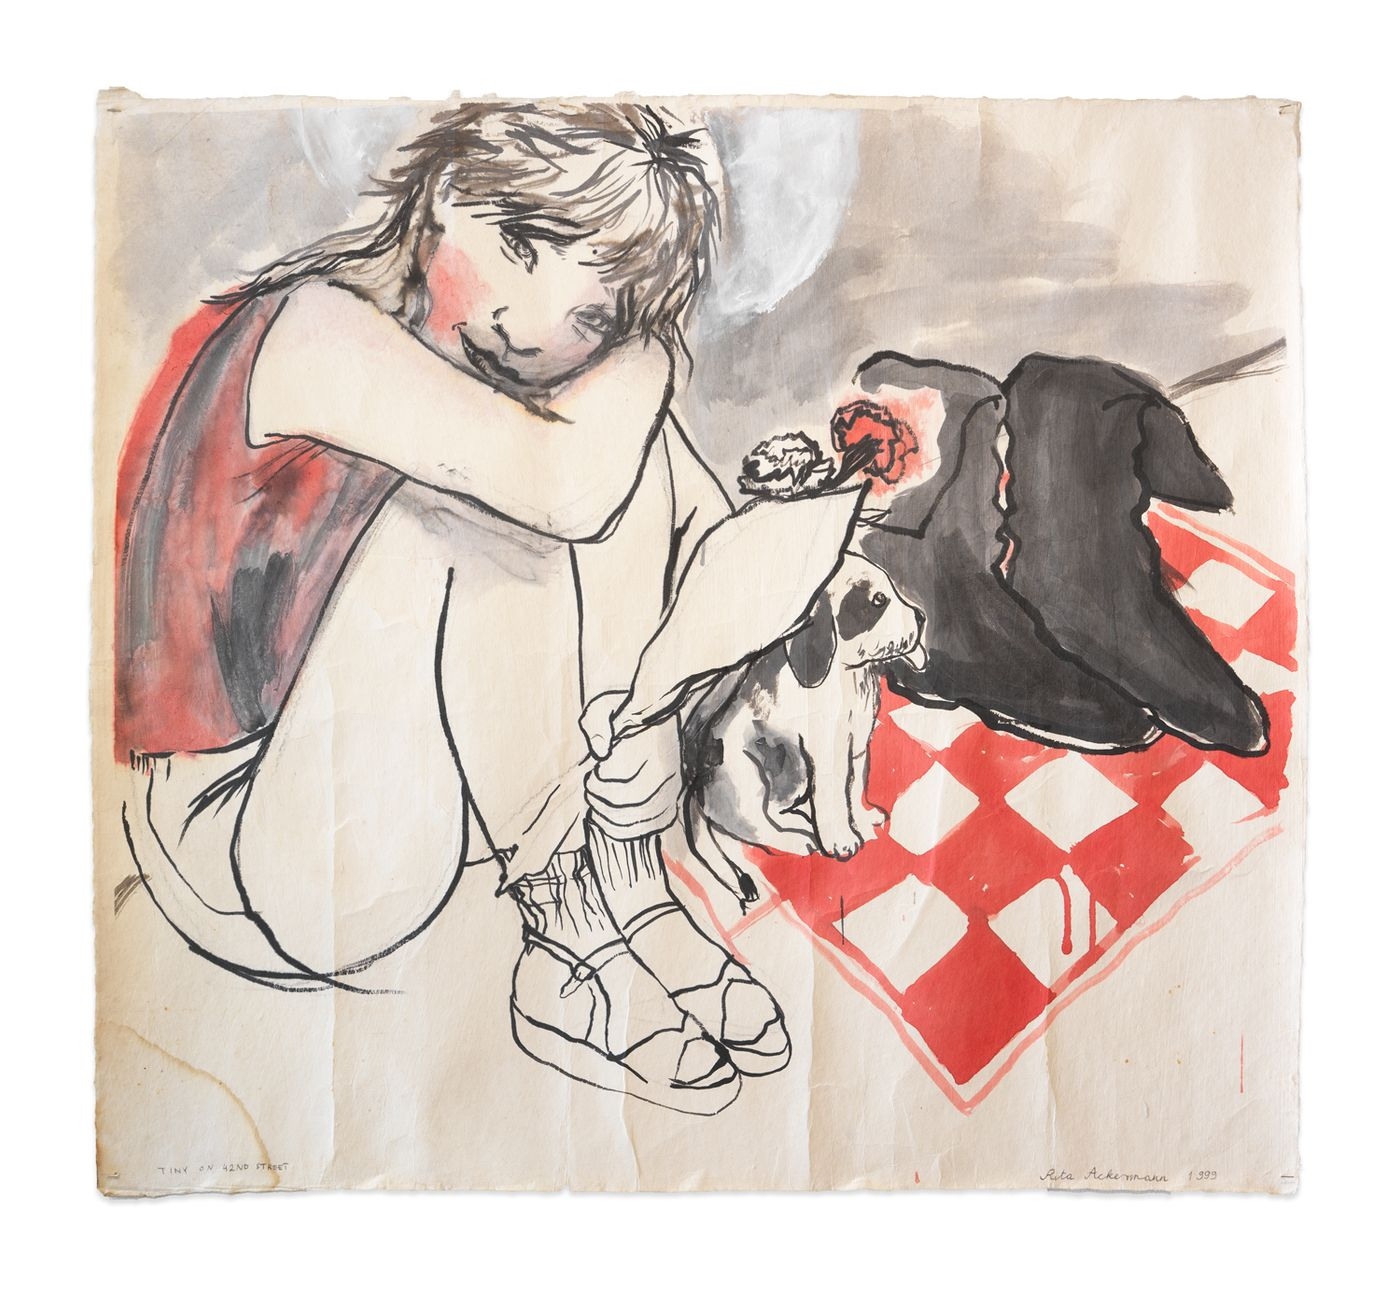 Rita Ackermann, Tiny on 42nd St., 1999. Acrylic ink on Japanese paper, 34.5 x 37.5 in (87.6 x 95.3 cm).